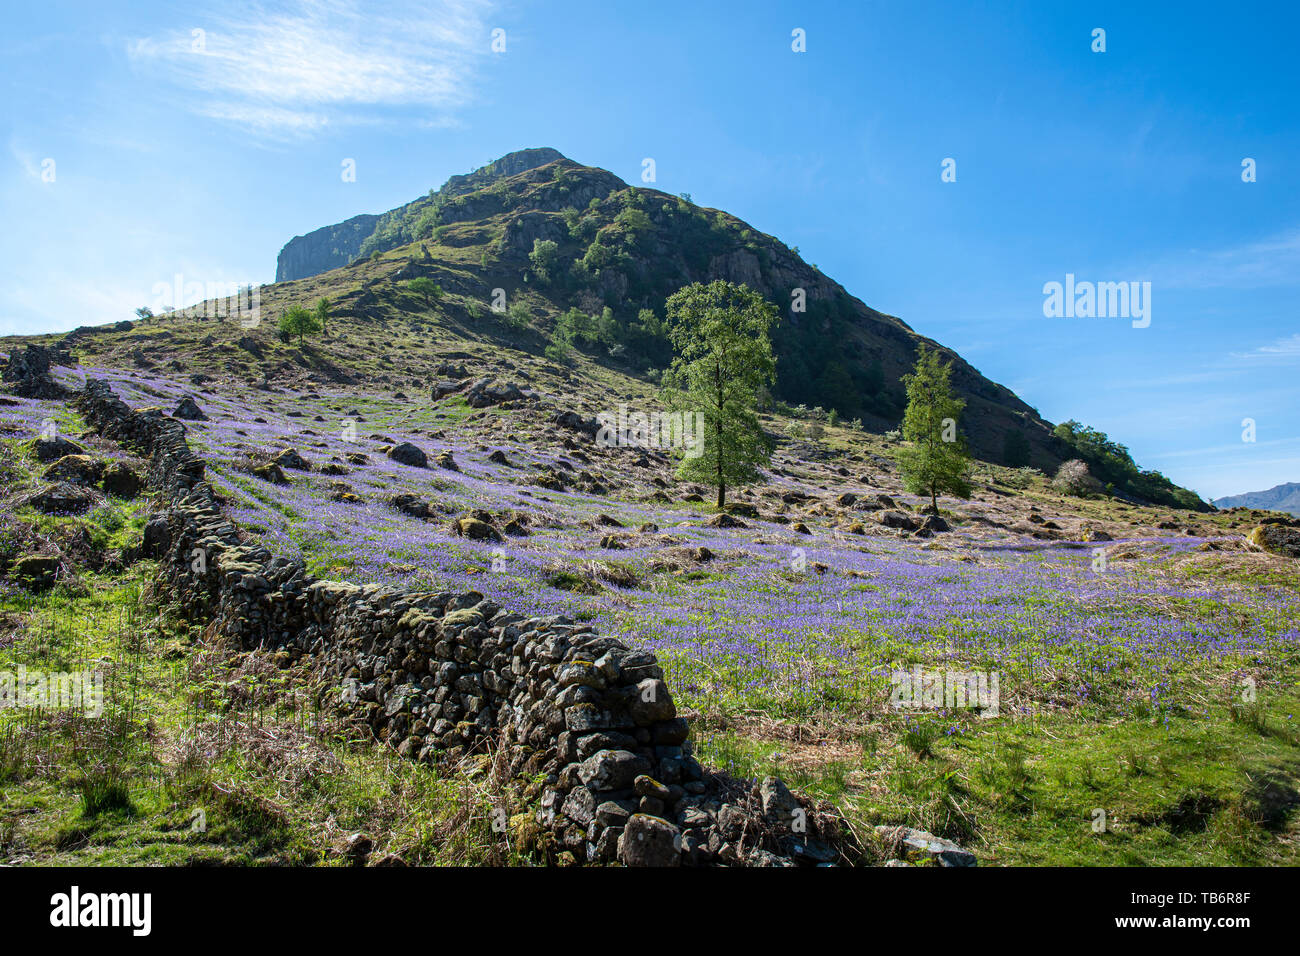 Eagle Crag stands out against the blue sky covered in blue bells below Langstrath Valley, Borrowdale,near Keswick, Lake District National Park, Cumbri - Stock Image